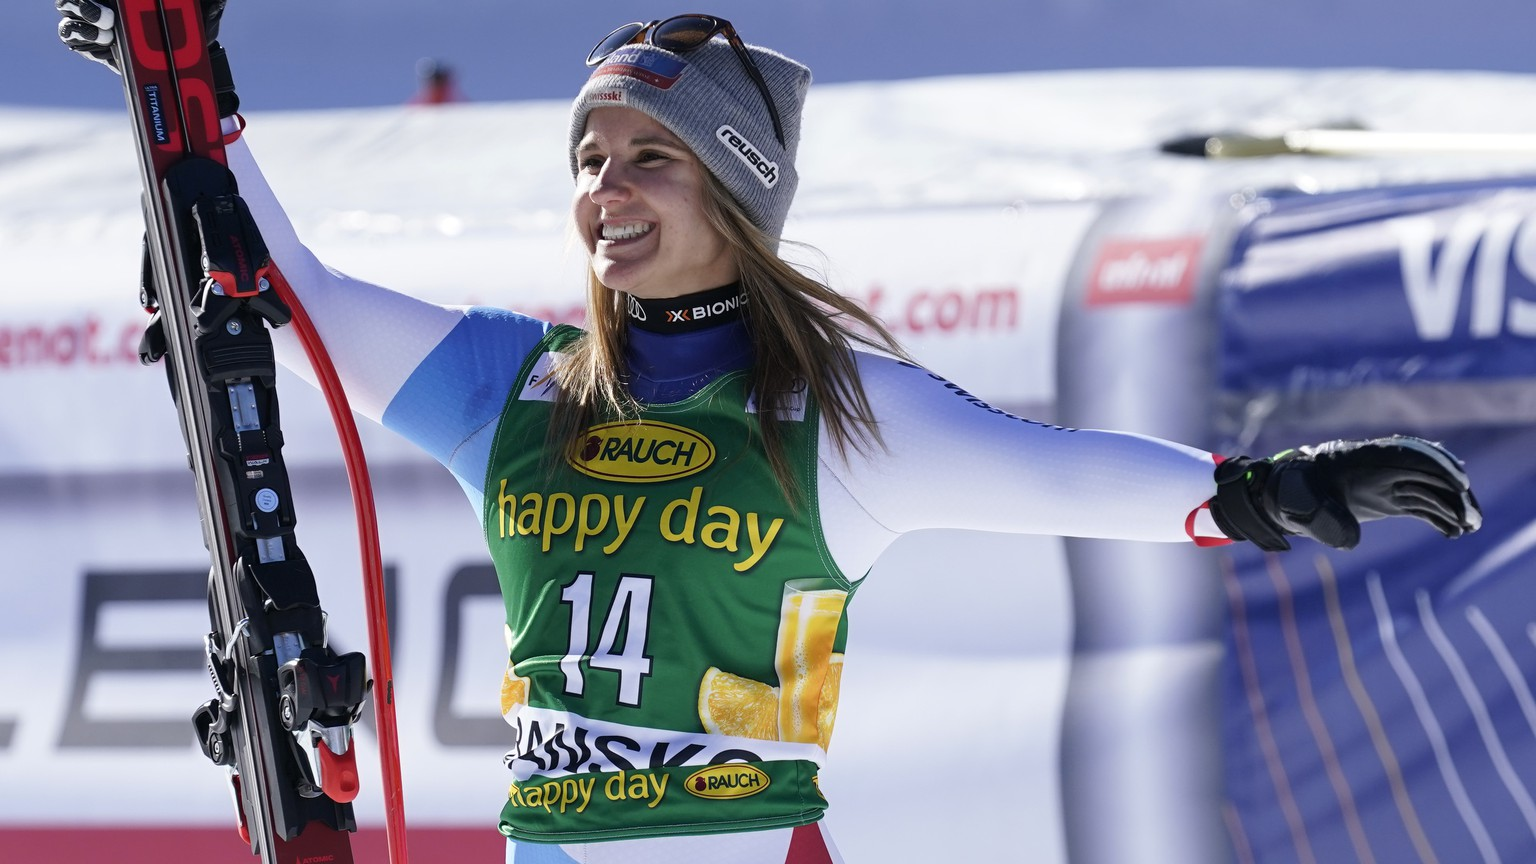 Switzerland's Joana Haehlen celebrates on the podium her third place after an alpine ski, women's World Cup downhill, in Bansko, Bulgaria, Friday, Jan. 24, 2020. (AP Photo/Giovanni Auletta)